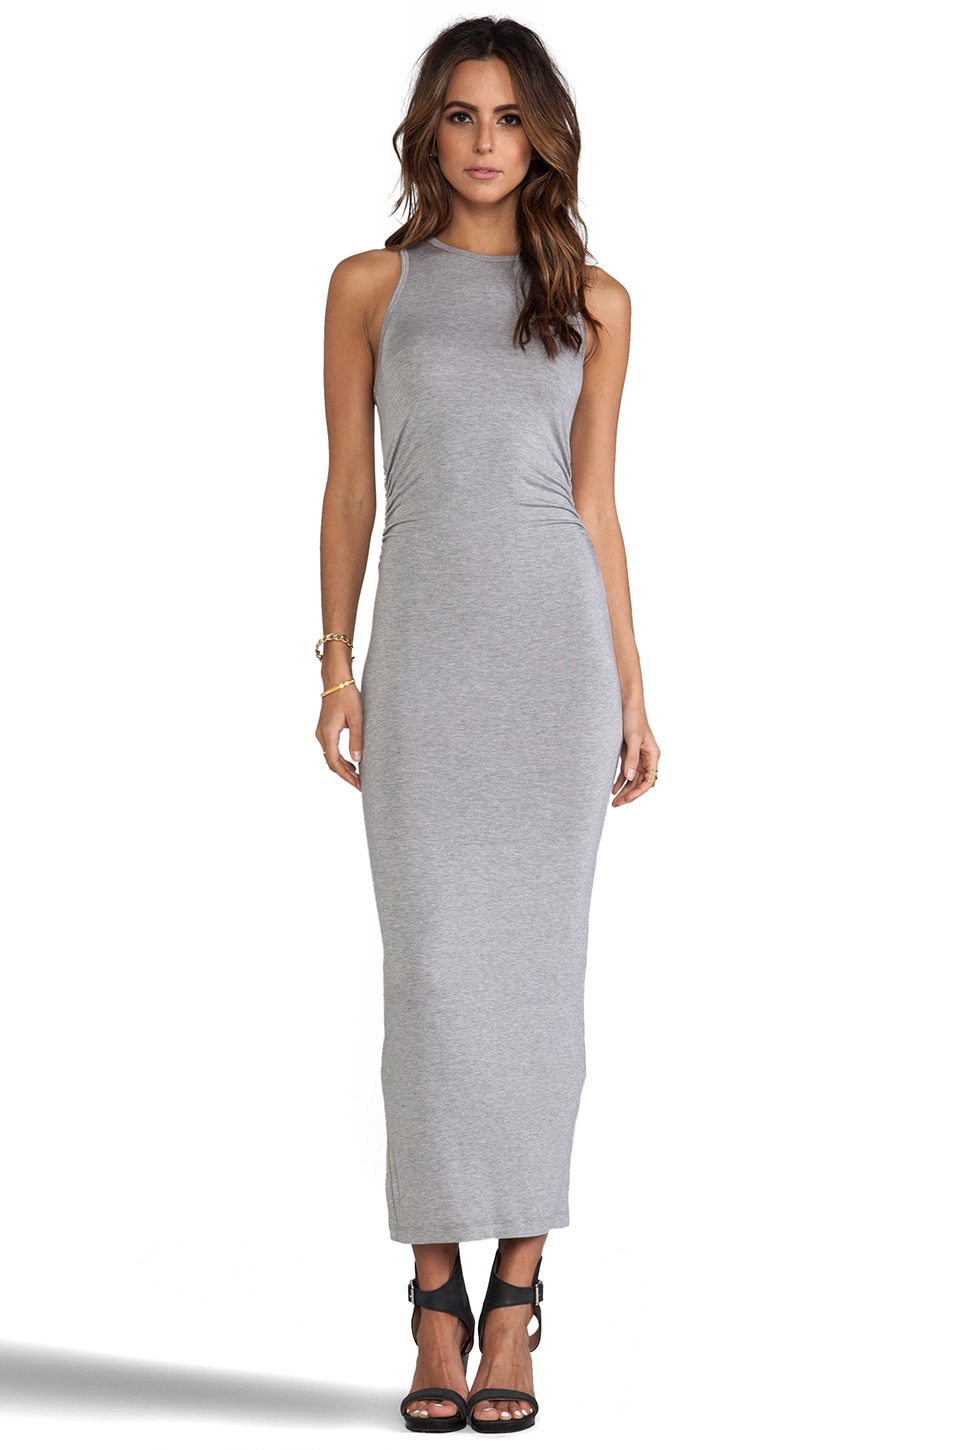 Kain Kinney Dress in Light Heather Grey